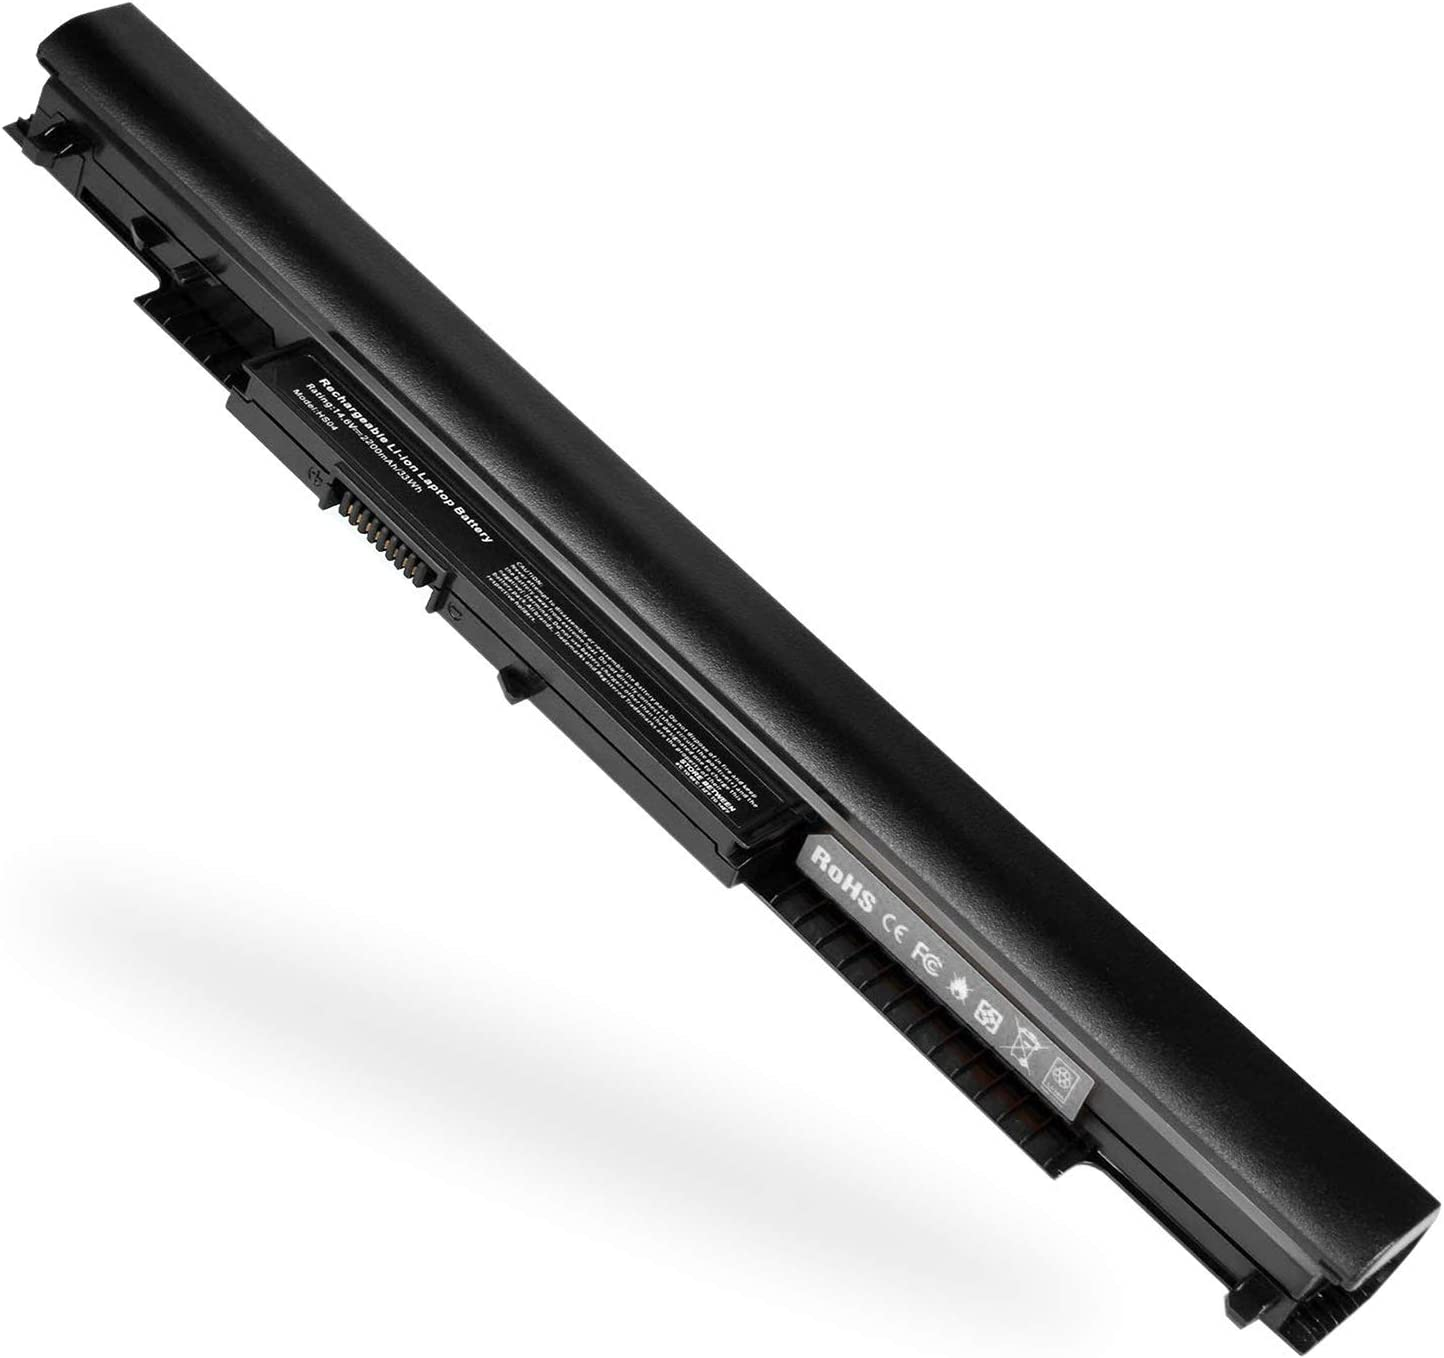 New Laptop Battery for HP Spare 807957-001 807956-001 807612-421 HS04 HS03 245 G4 255 G4